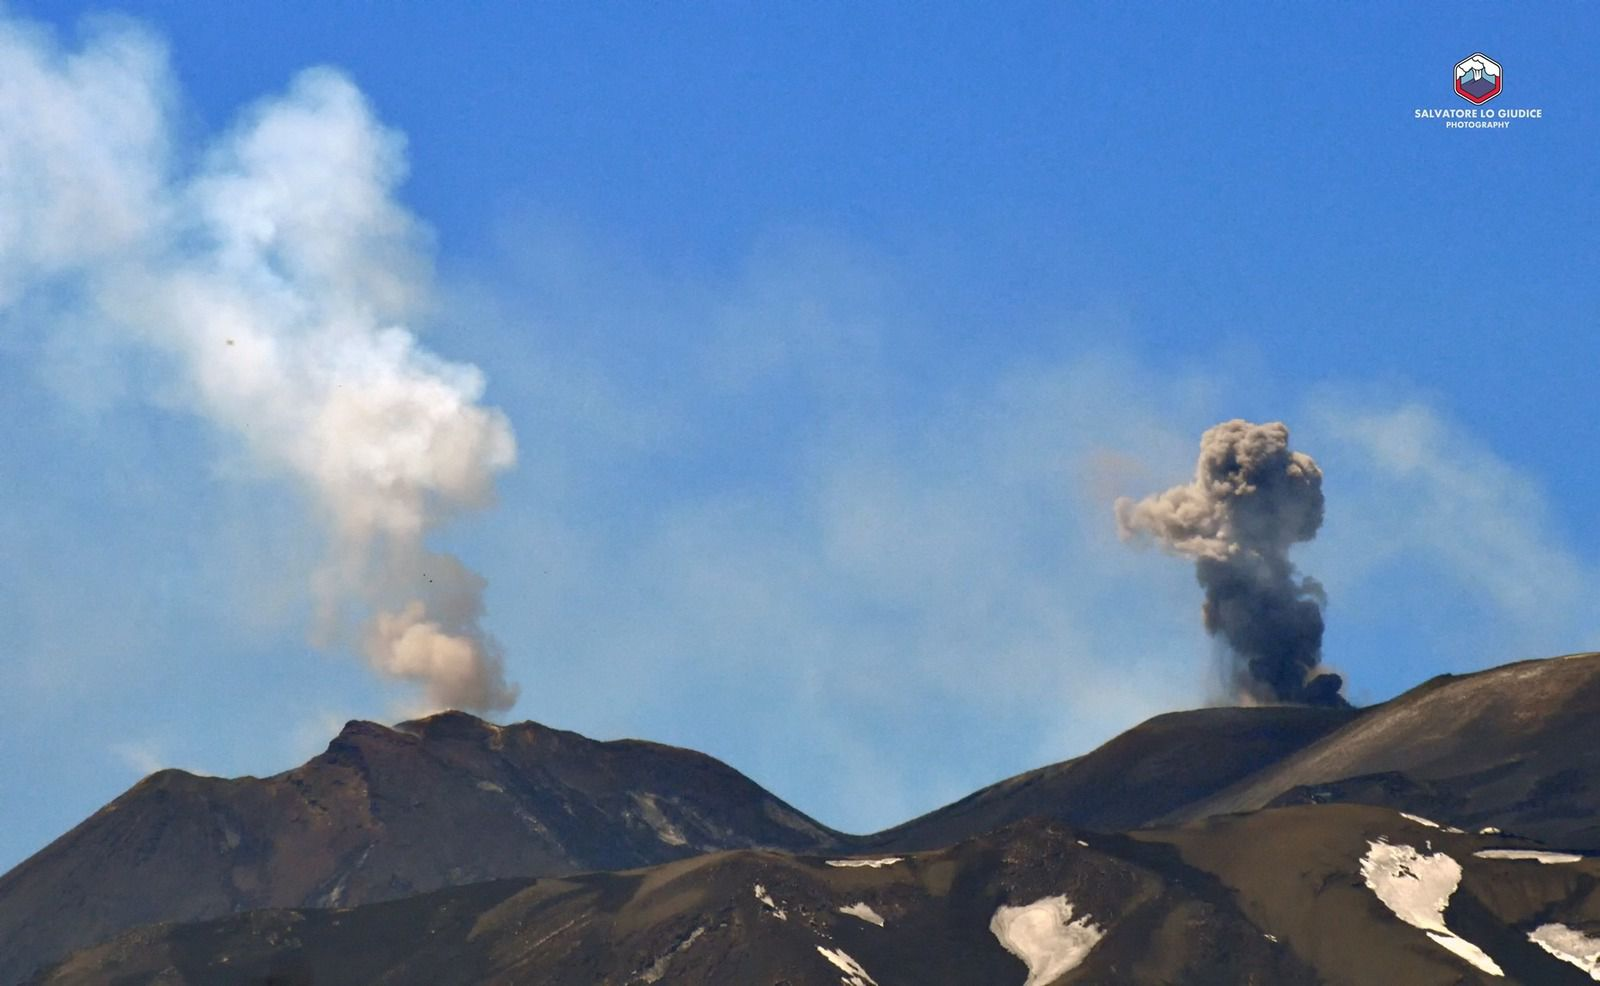 Etna NSEC & VOR - white plume and black plume ... what will be the good news? - photo Salvatore lo Giudice